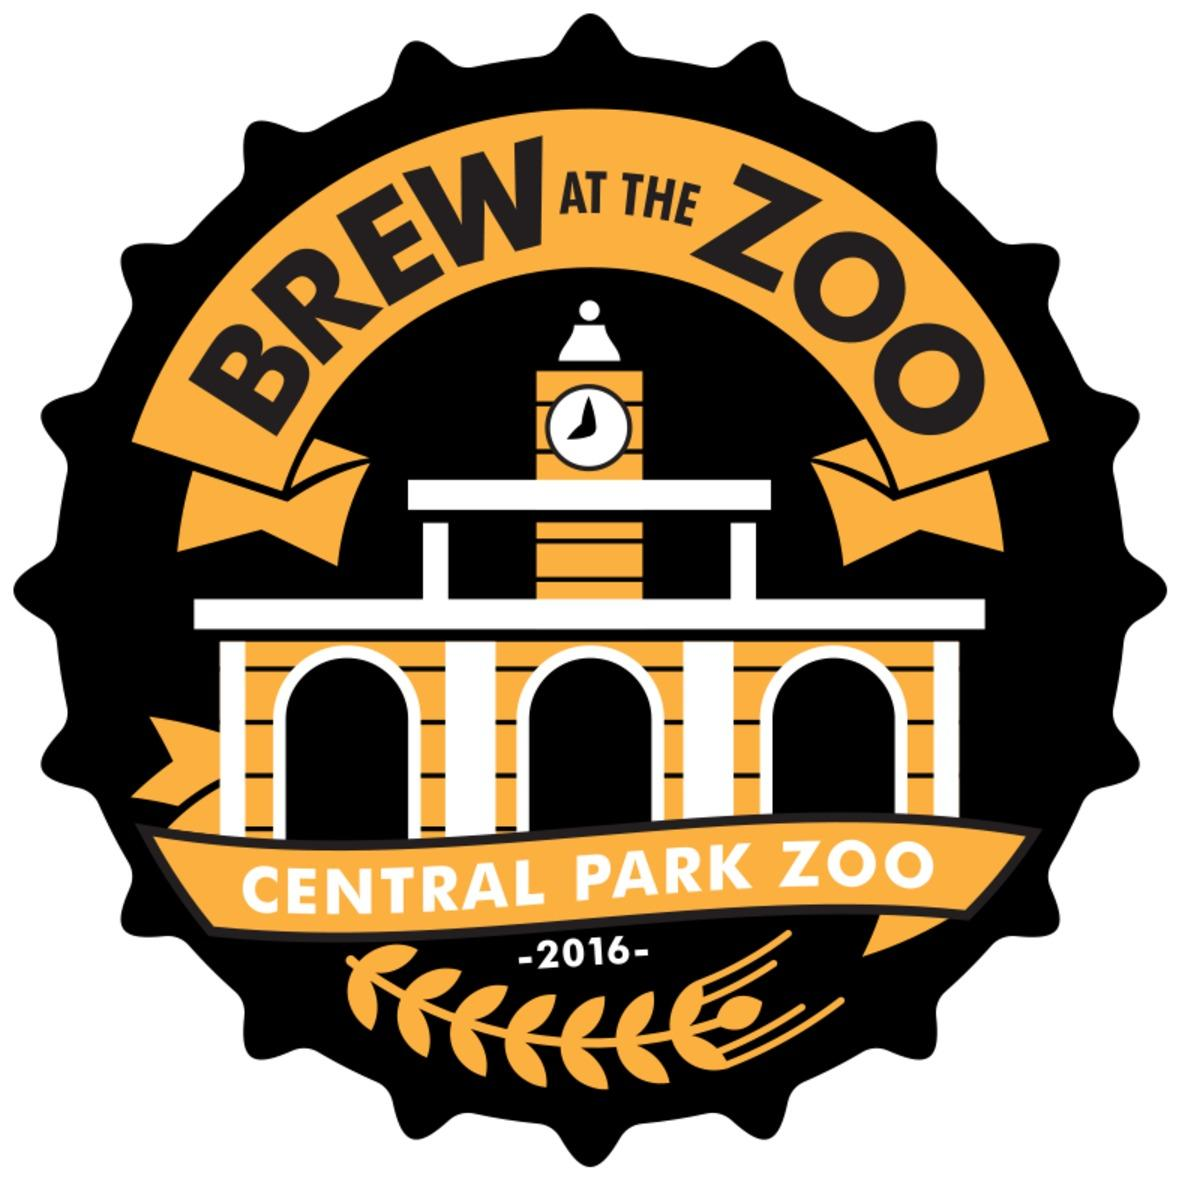 Brew at the bmnara. Central park zoo logo clipart